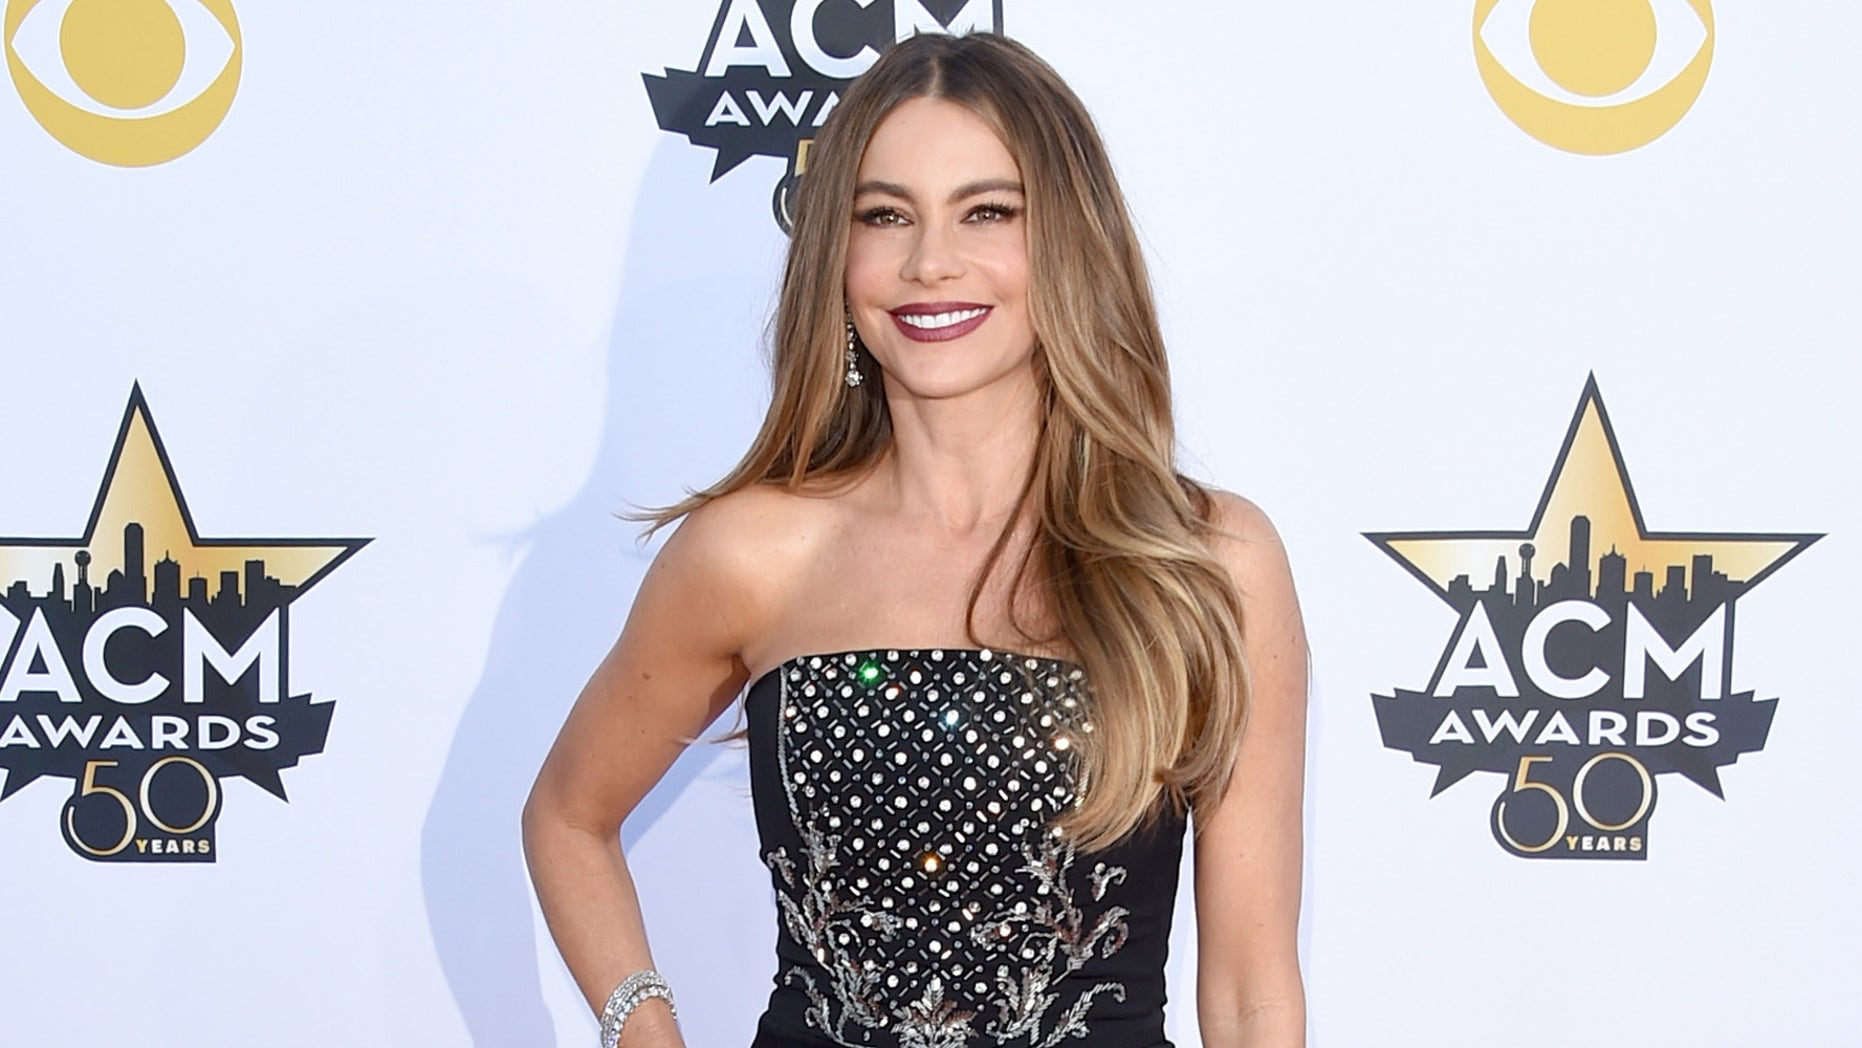 ARLINGTON, TX - APRIL 19:  Actress Sofia Vergara  attends the 50th Academy Of Country Music Awards at AT&T Stadium on April 19, 2015 in Arlington, Texas.  (Photo by Jason Merritt/Getty Images)